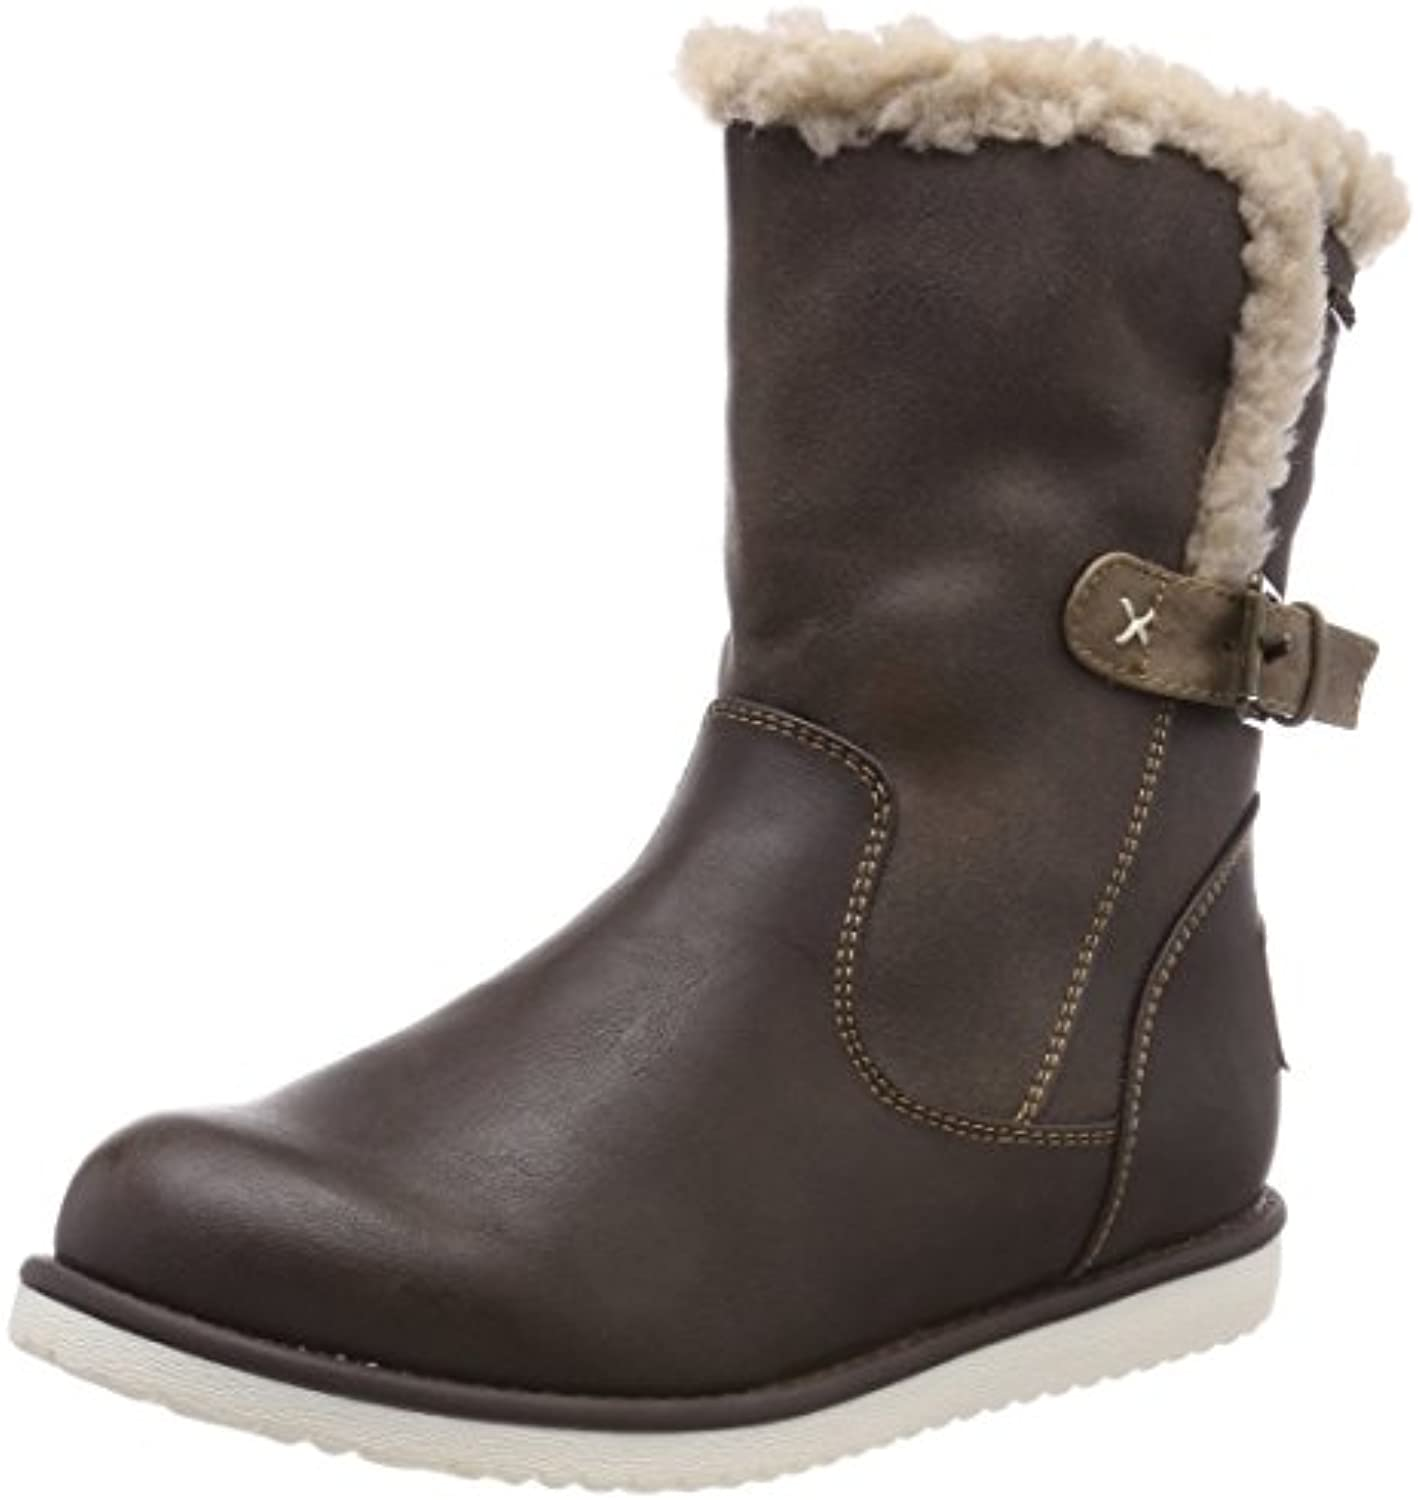 Canadians 264 512 - Botines Mujer